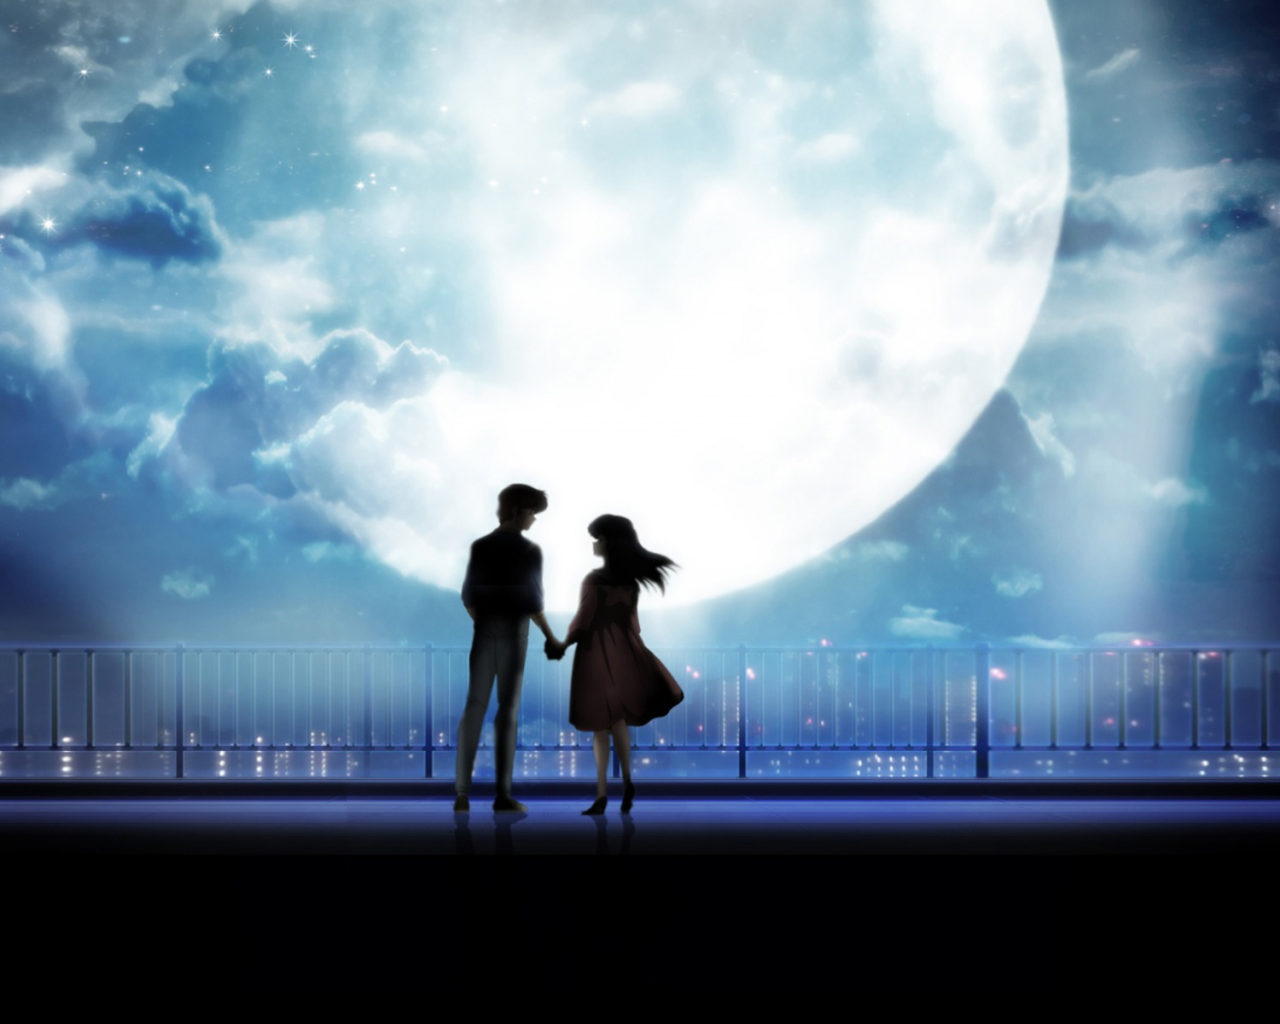 Happy New Year Iphone Wallpaper Anime Art Anime Couple Holding Hands Moonlight Desktop